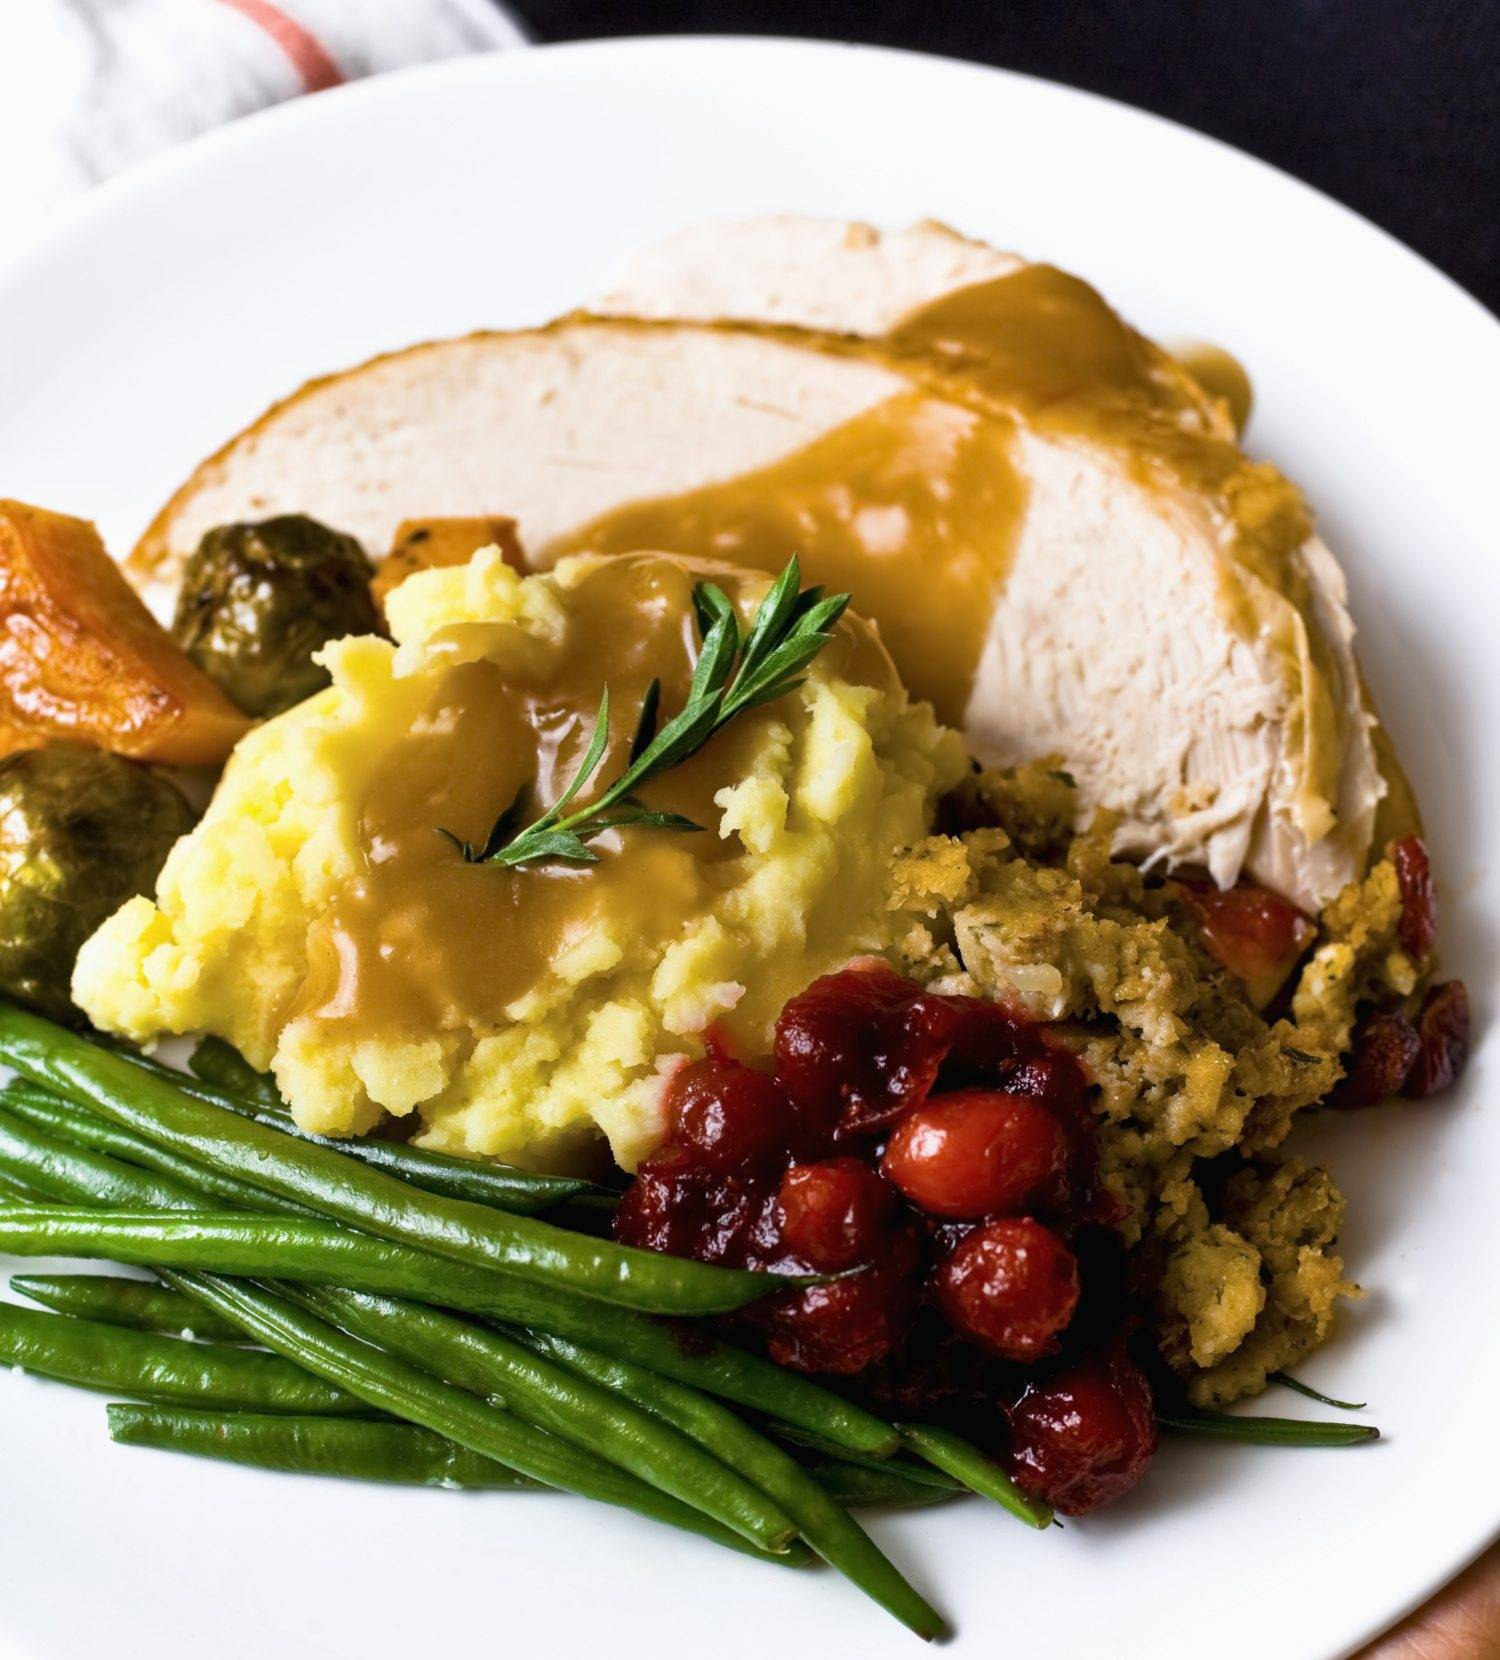 Sliced Roasted Turkey Breast, Brown Gravy, Mashed Potatoes, Green Beans, Stuffing, Cranberry Sauce, Green Beans